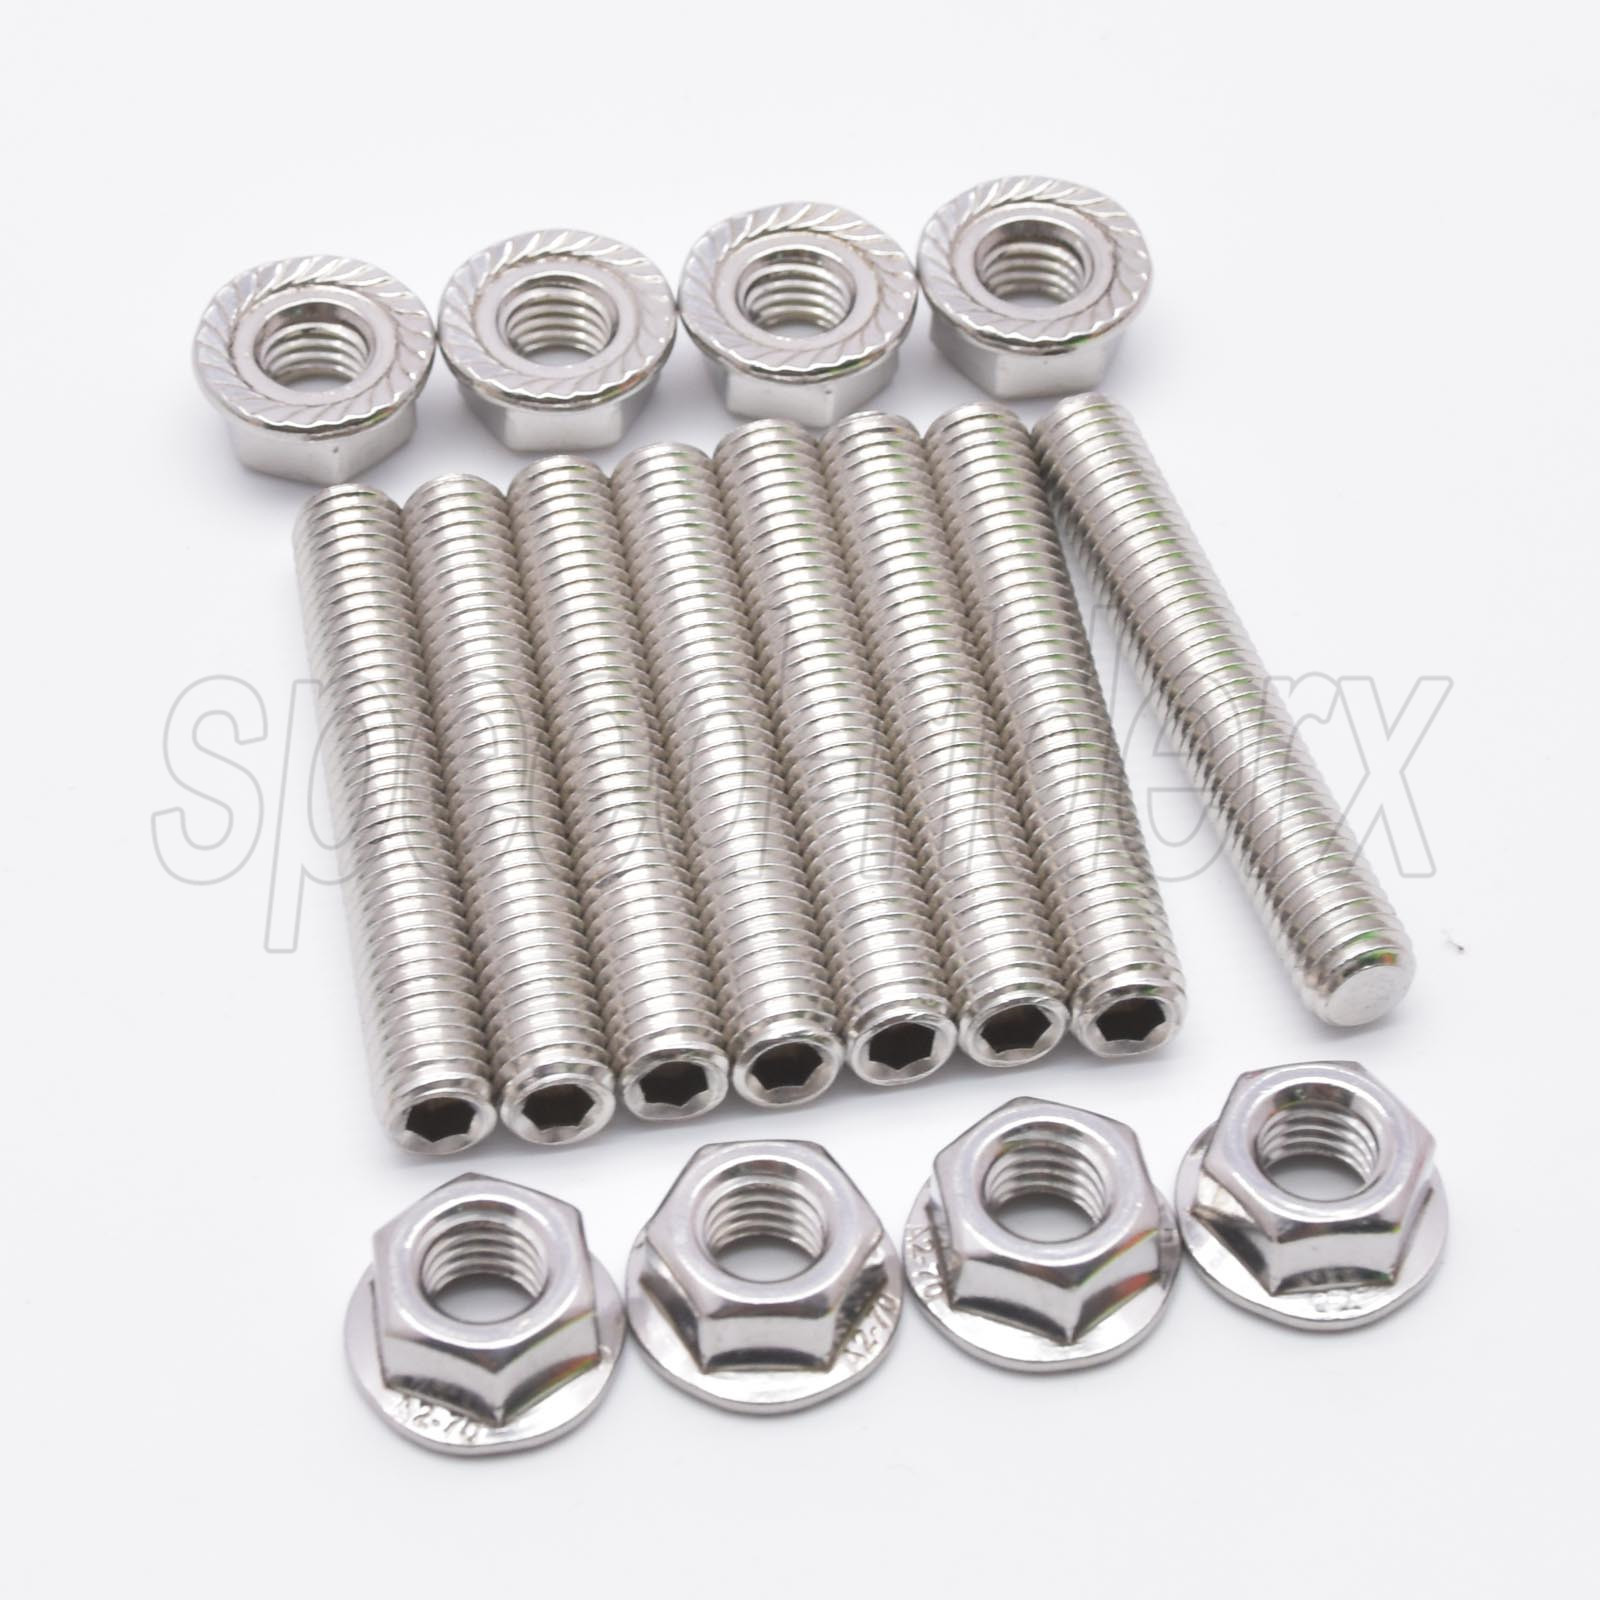 YHB 16PCS Stainless Exhaust manifold Stud Compatible With Ford 4.6 /& 5.4 Liter V8